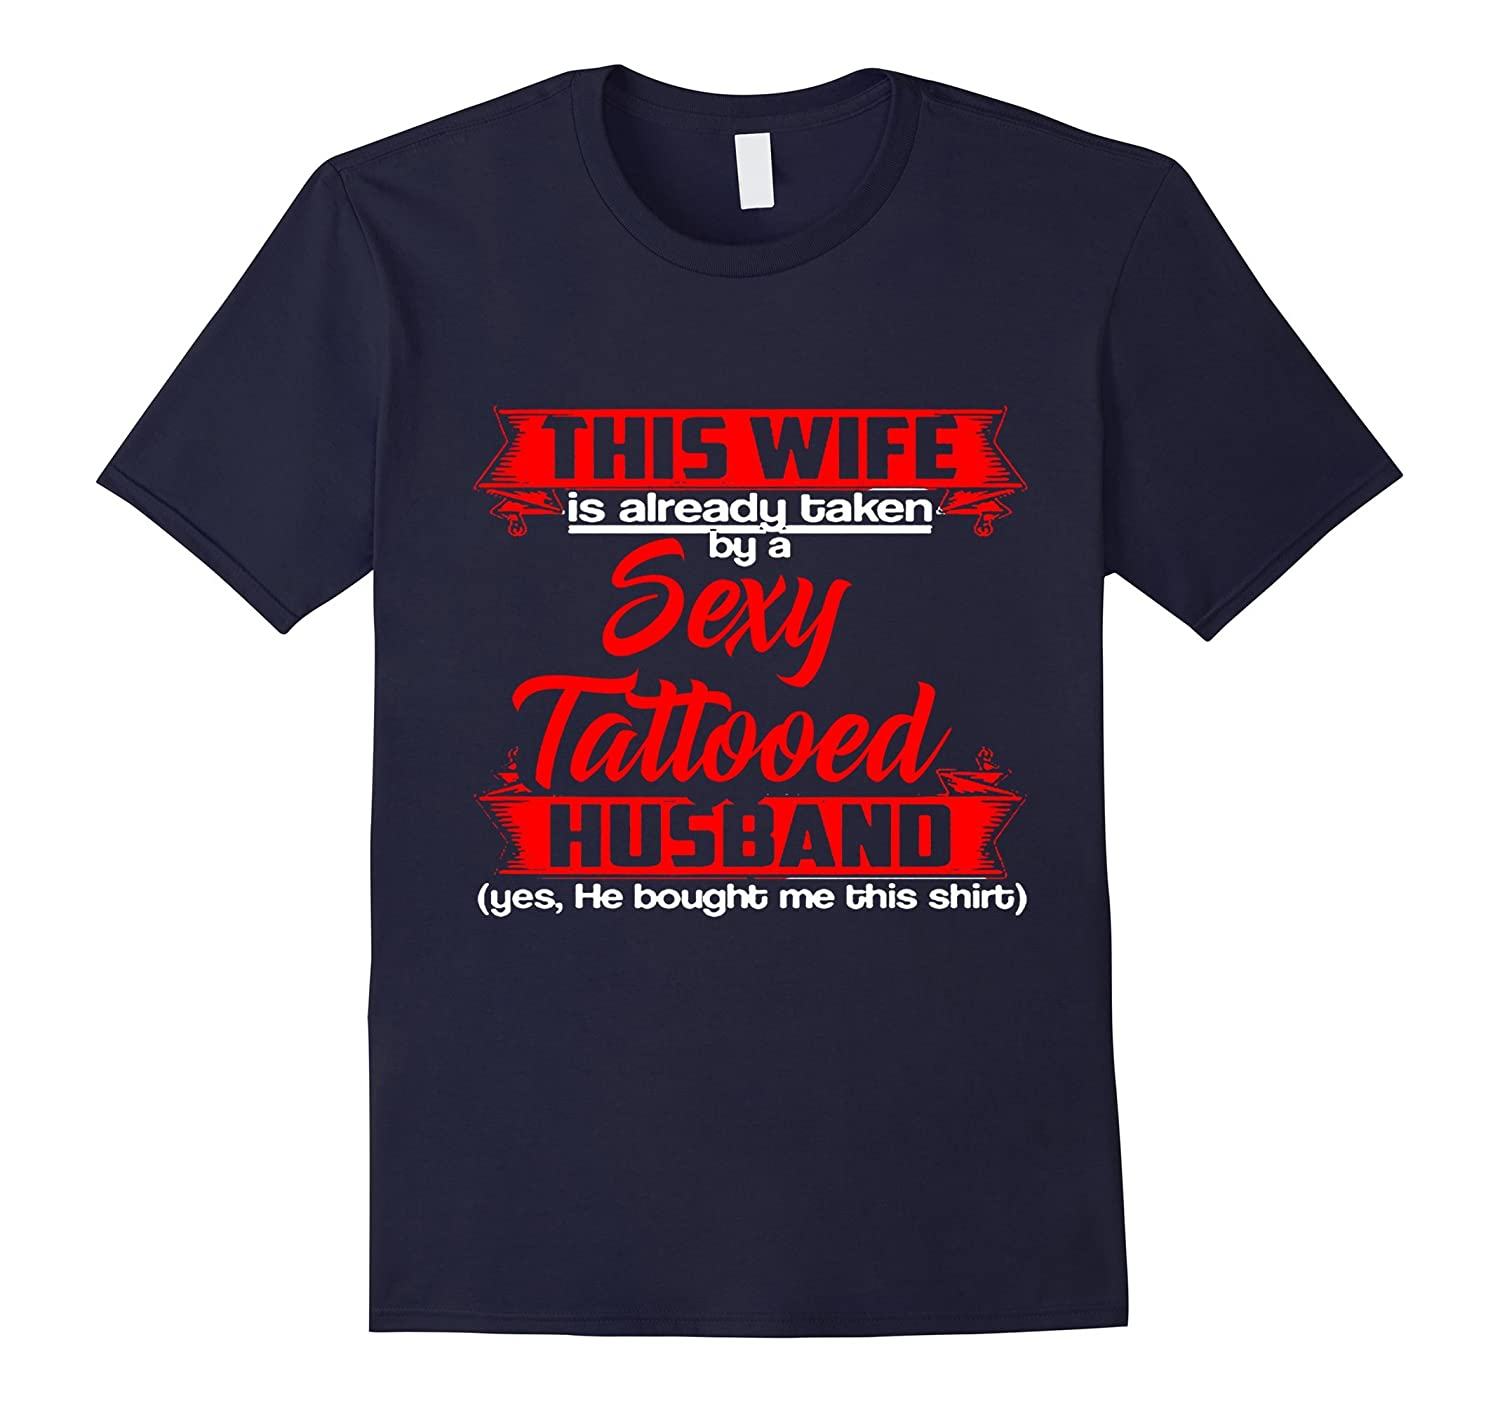 This Wife is already taken by a Sexy Tattooed Husband Shirt-Art